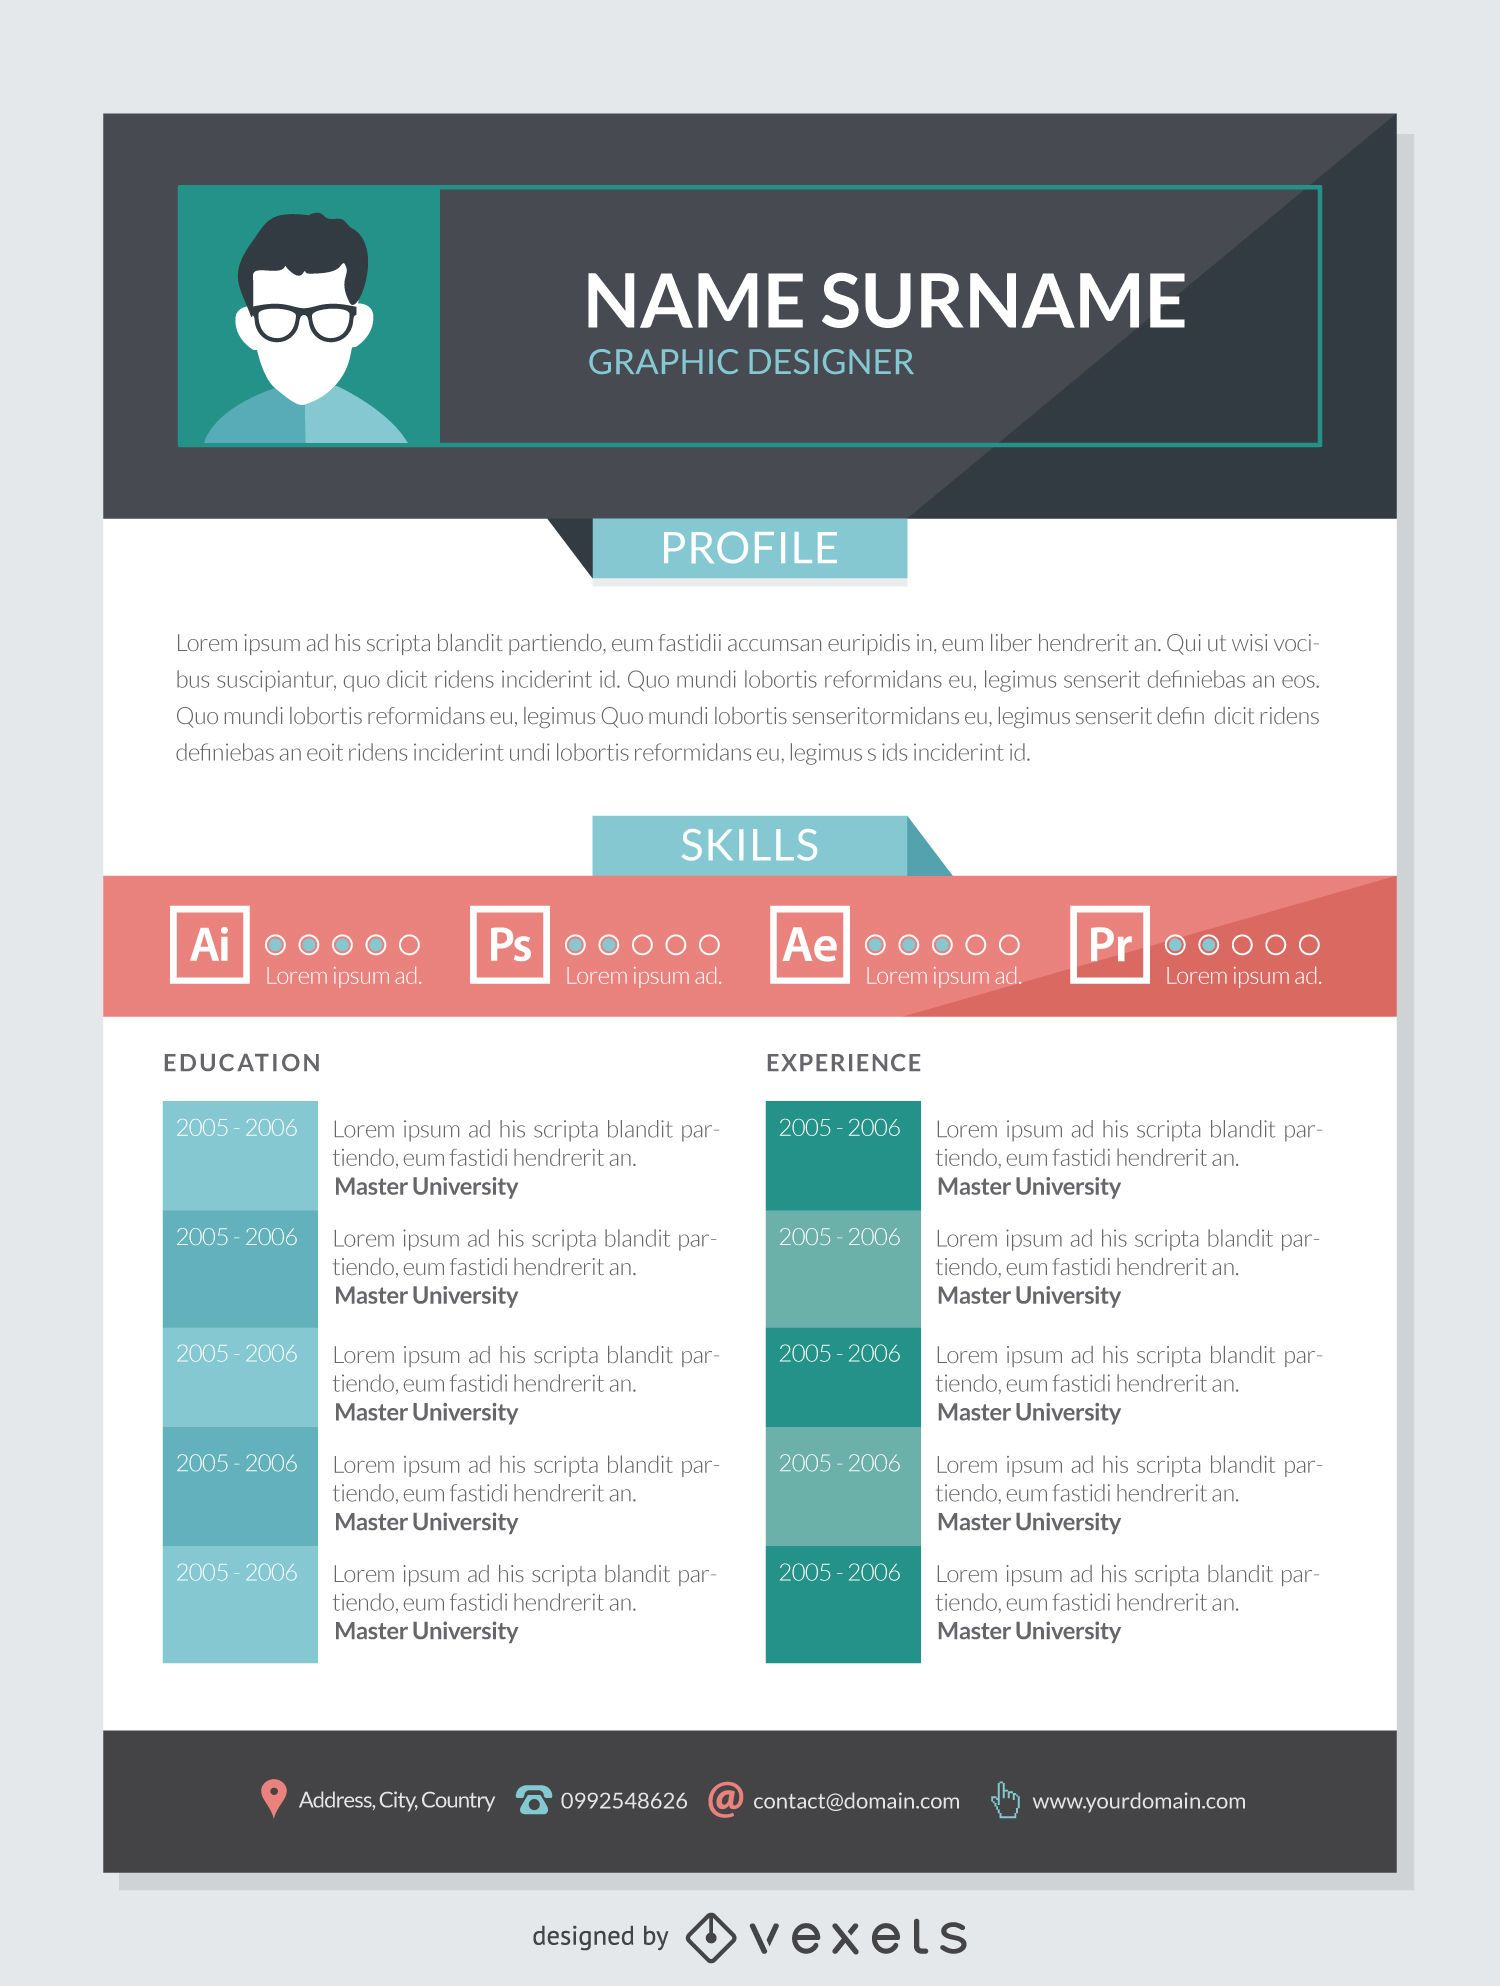 Graphic Designer Cv Mockup Template Vector Download